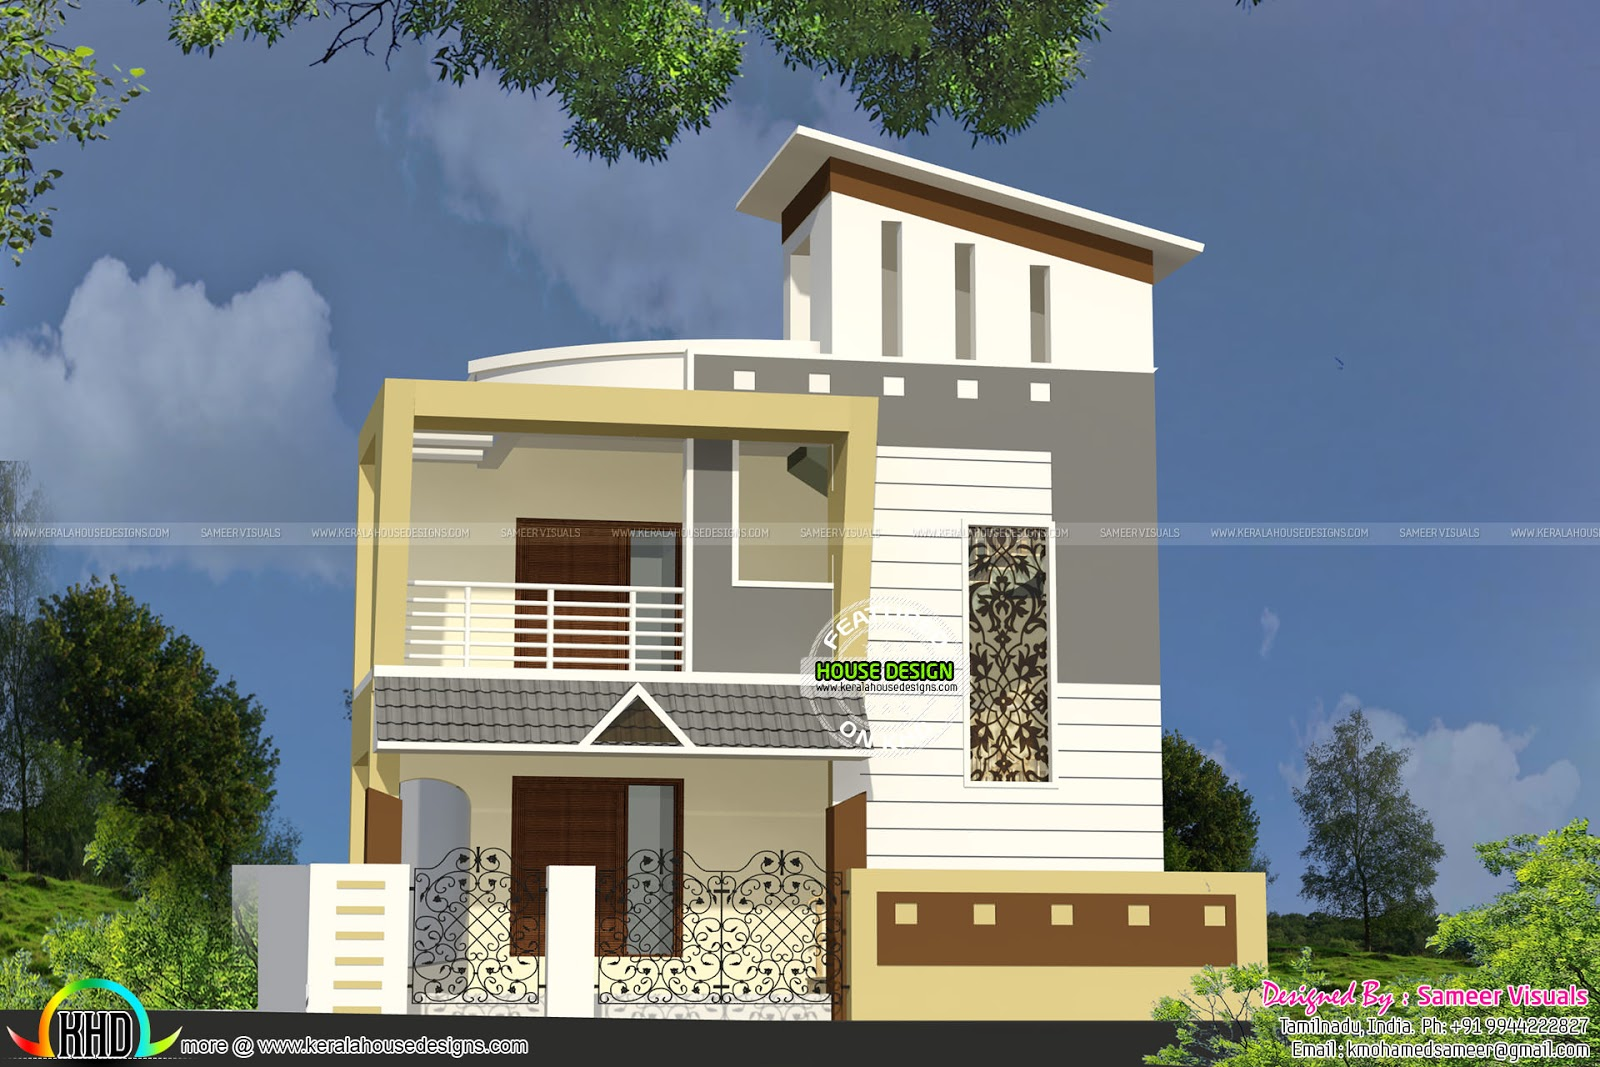 One Square Meter In Square Feet Double Floor Small Home Kerala Home Design And Floor Plans